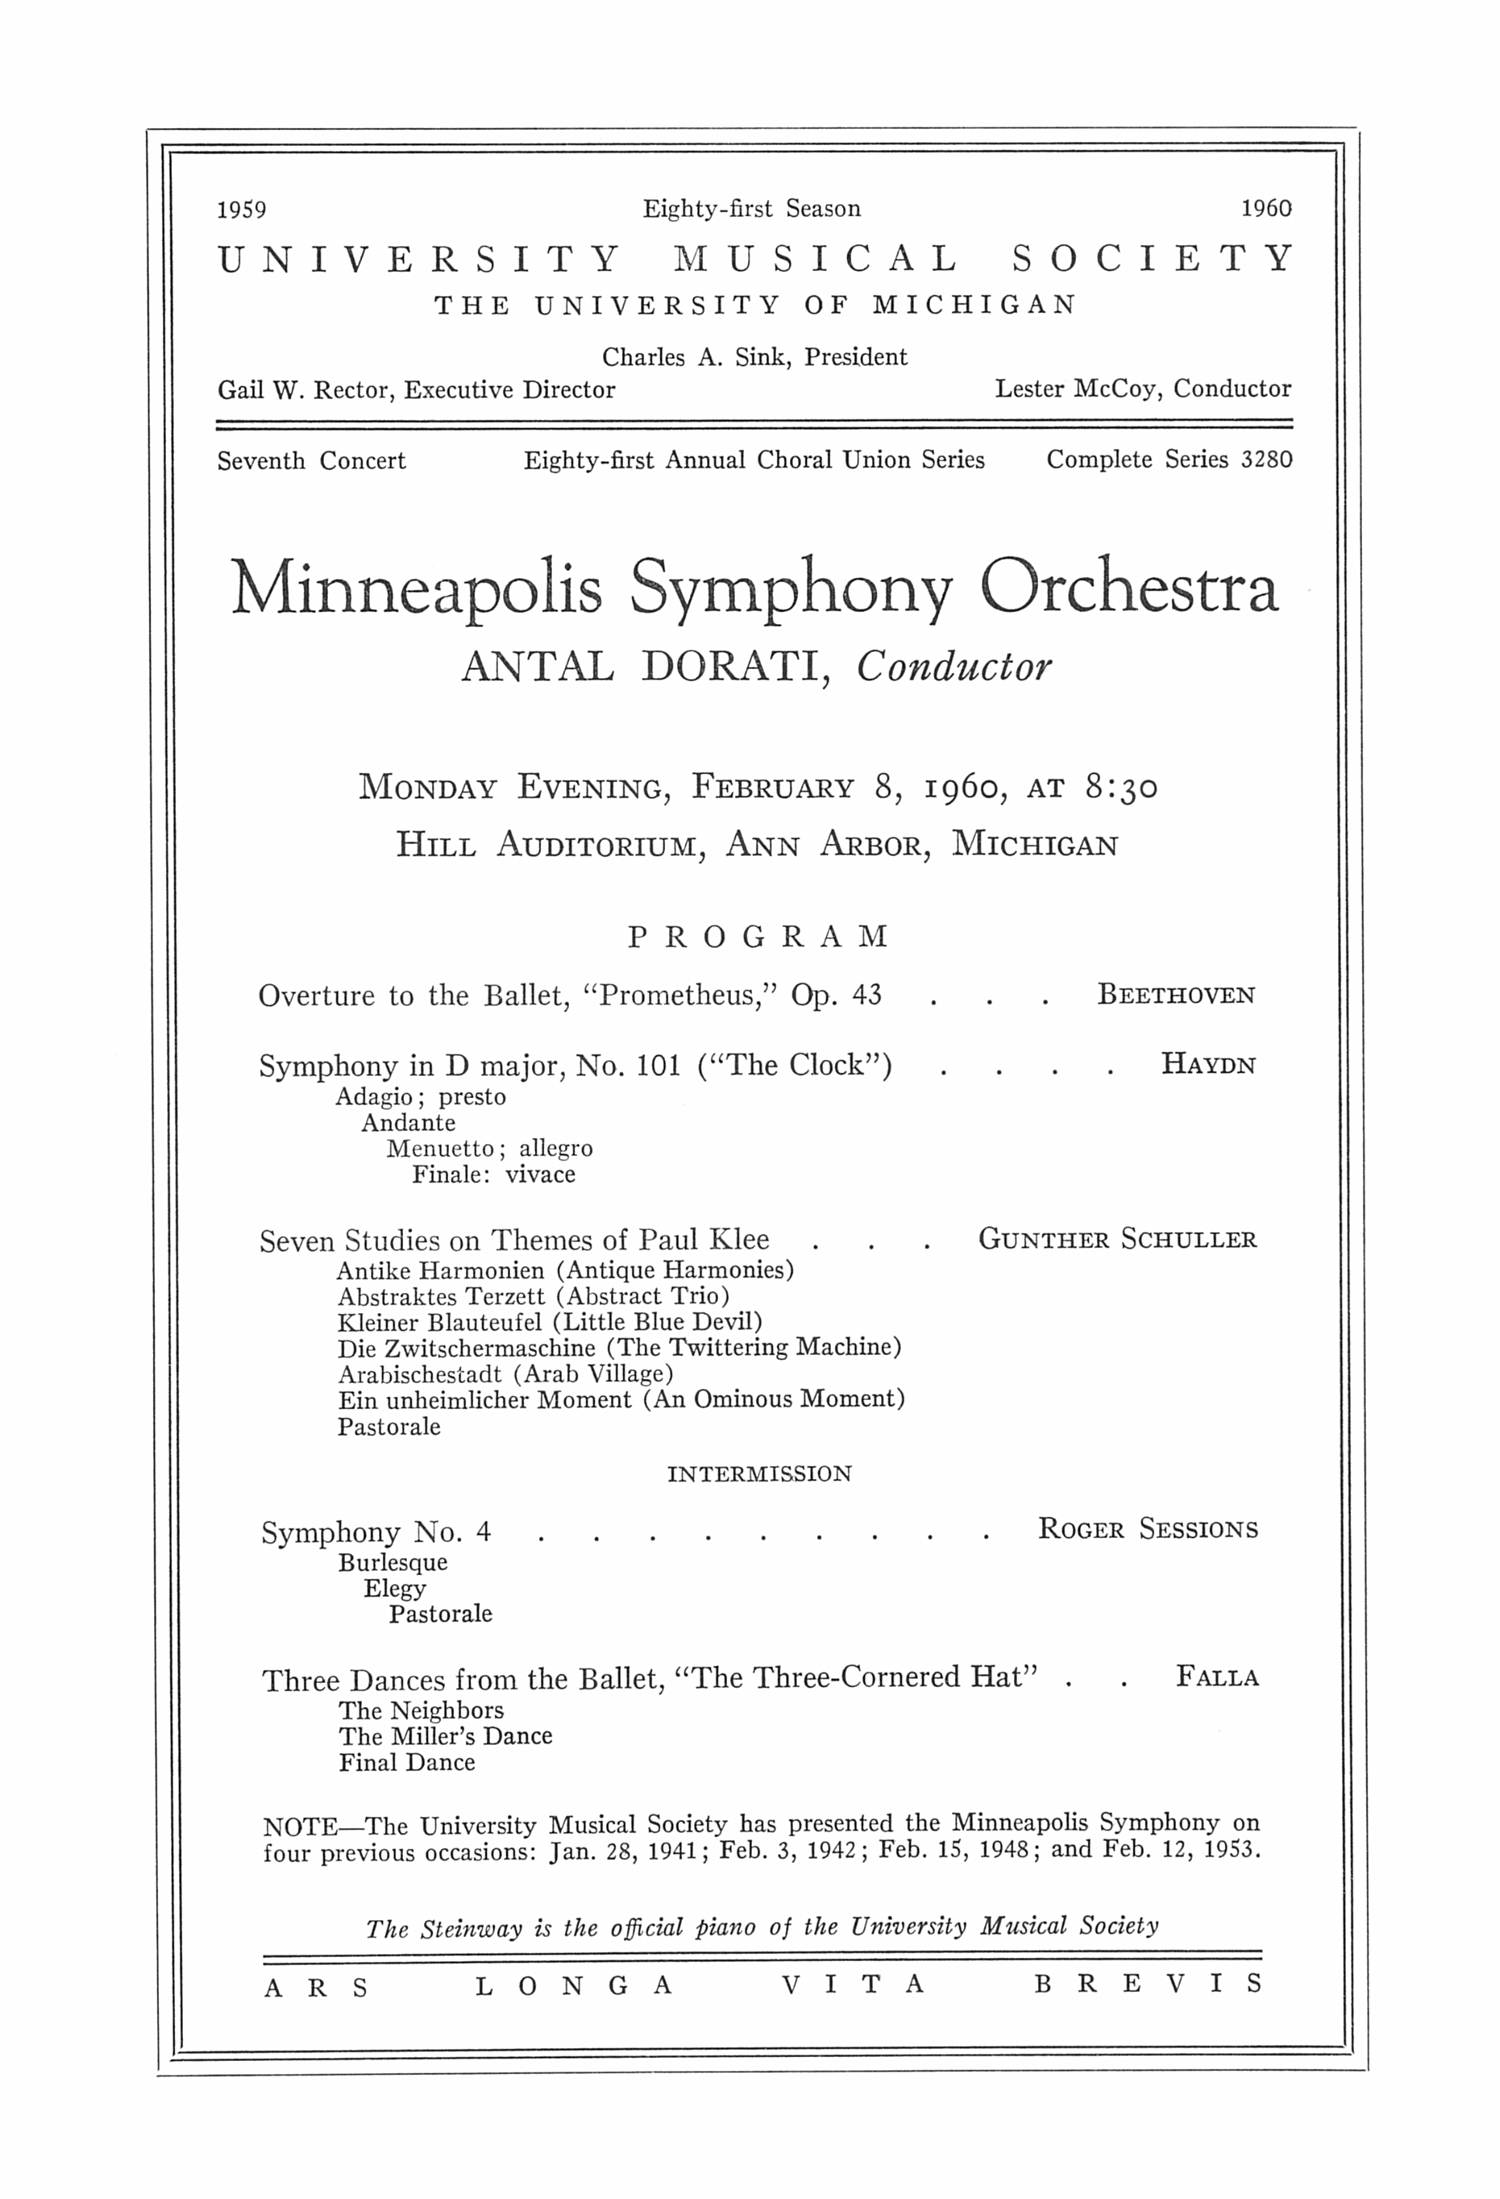 UMS Concert Program, February 8, 1960: Minneapolis Symphony Orchestra --  image